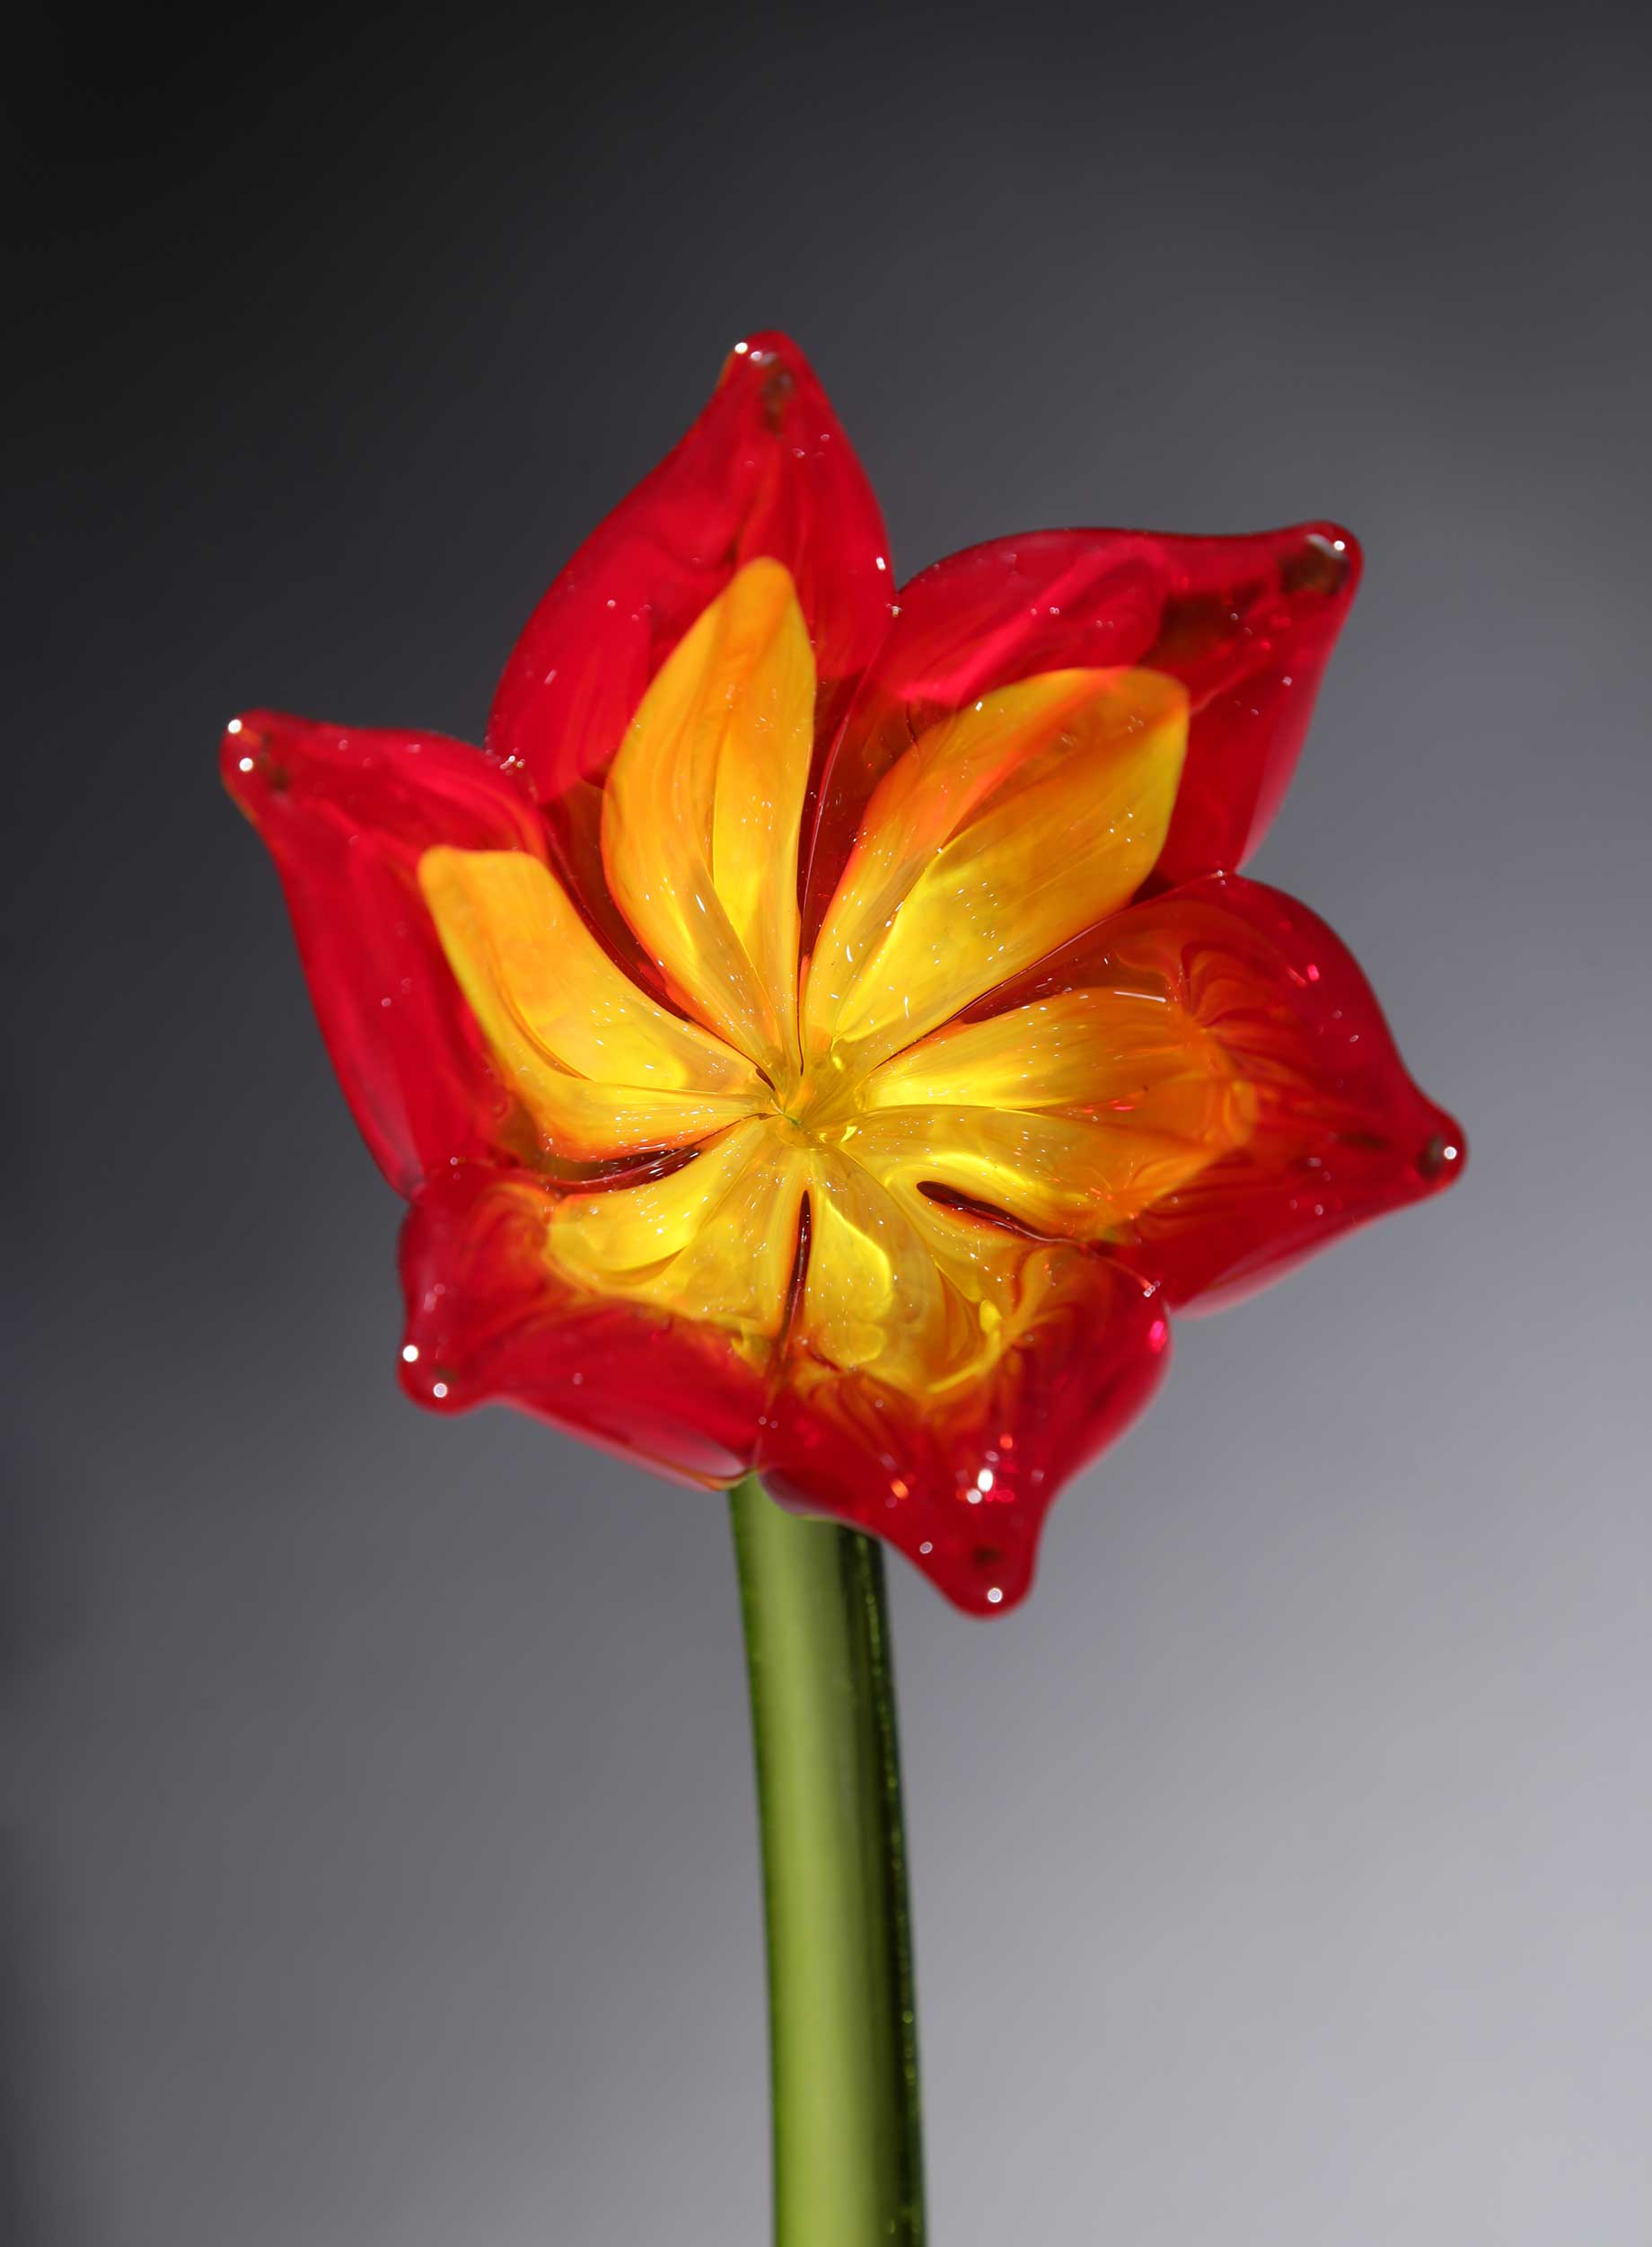 Flower Tulip Red Yellow